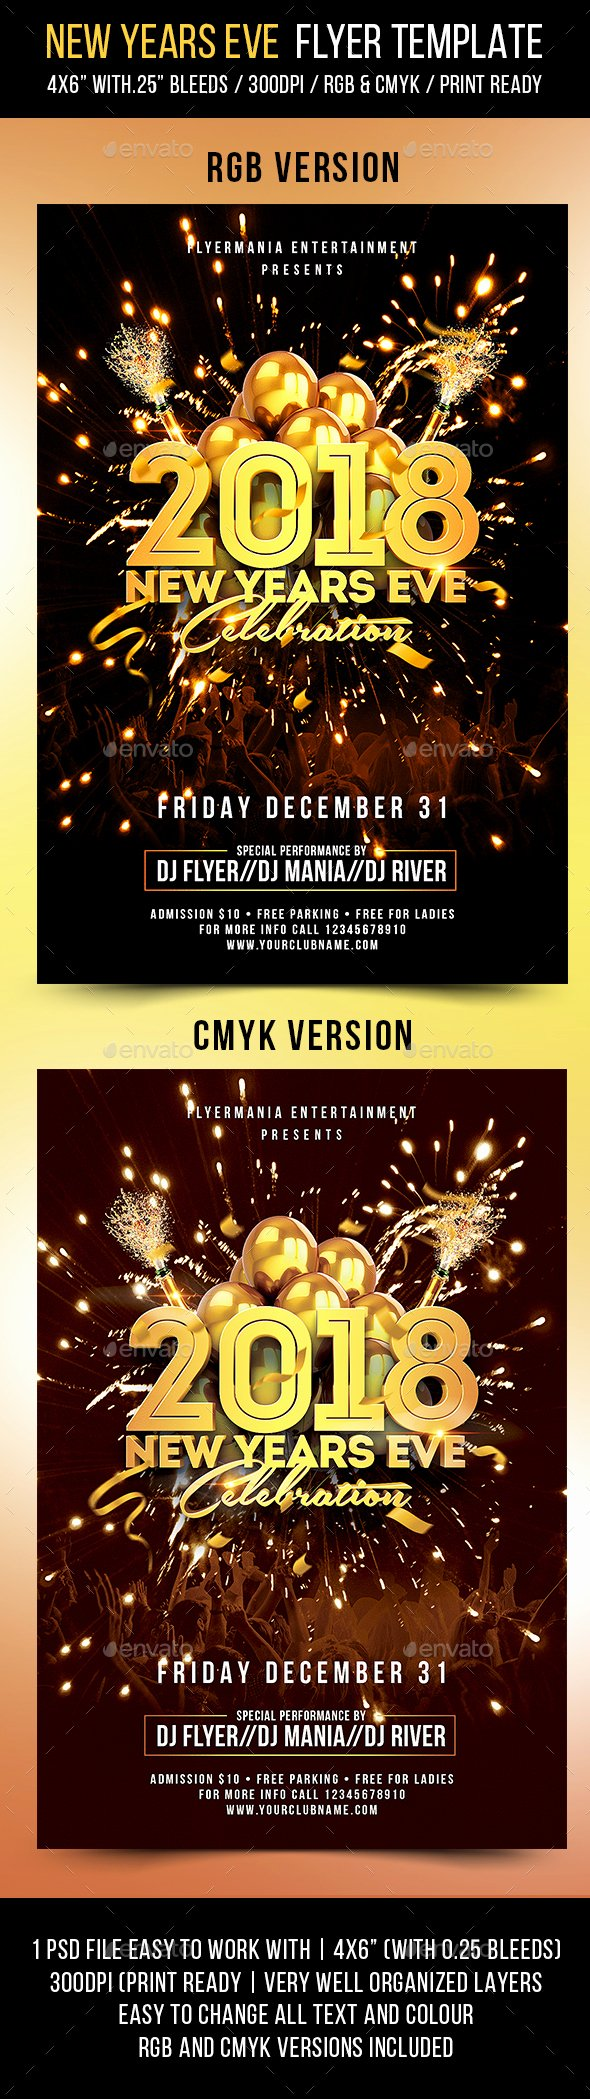 New Years Eve Flyer Template by Flyermania